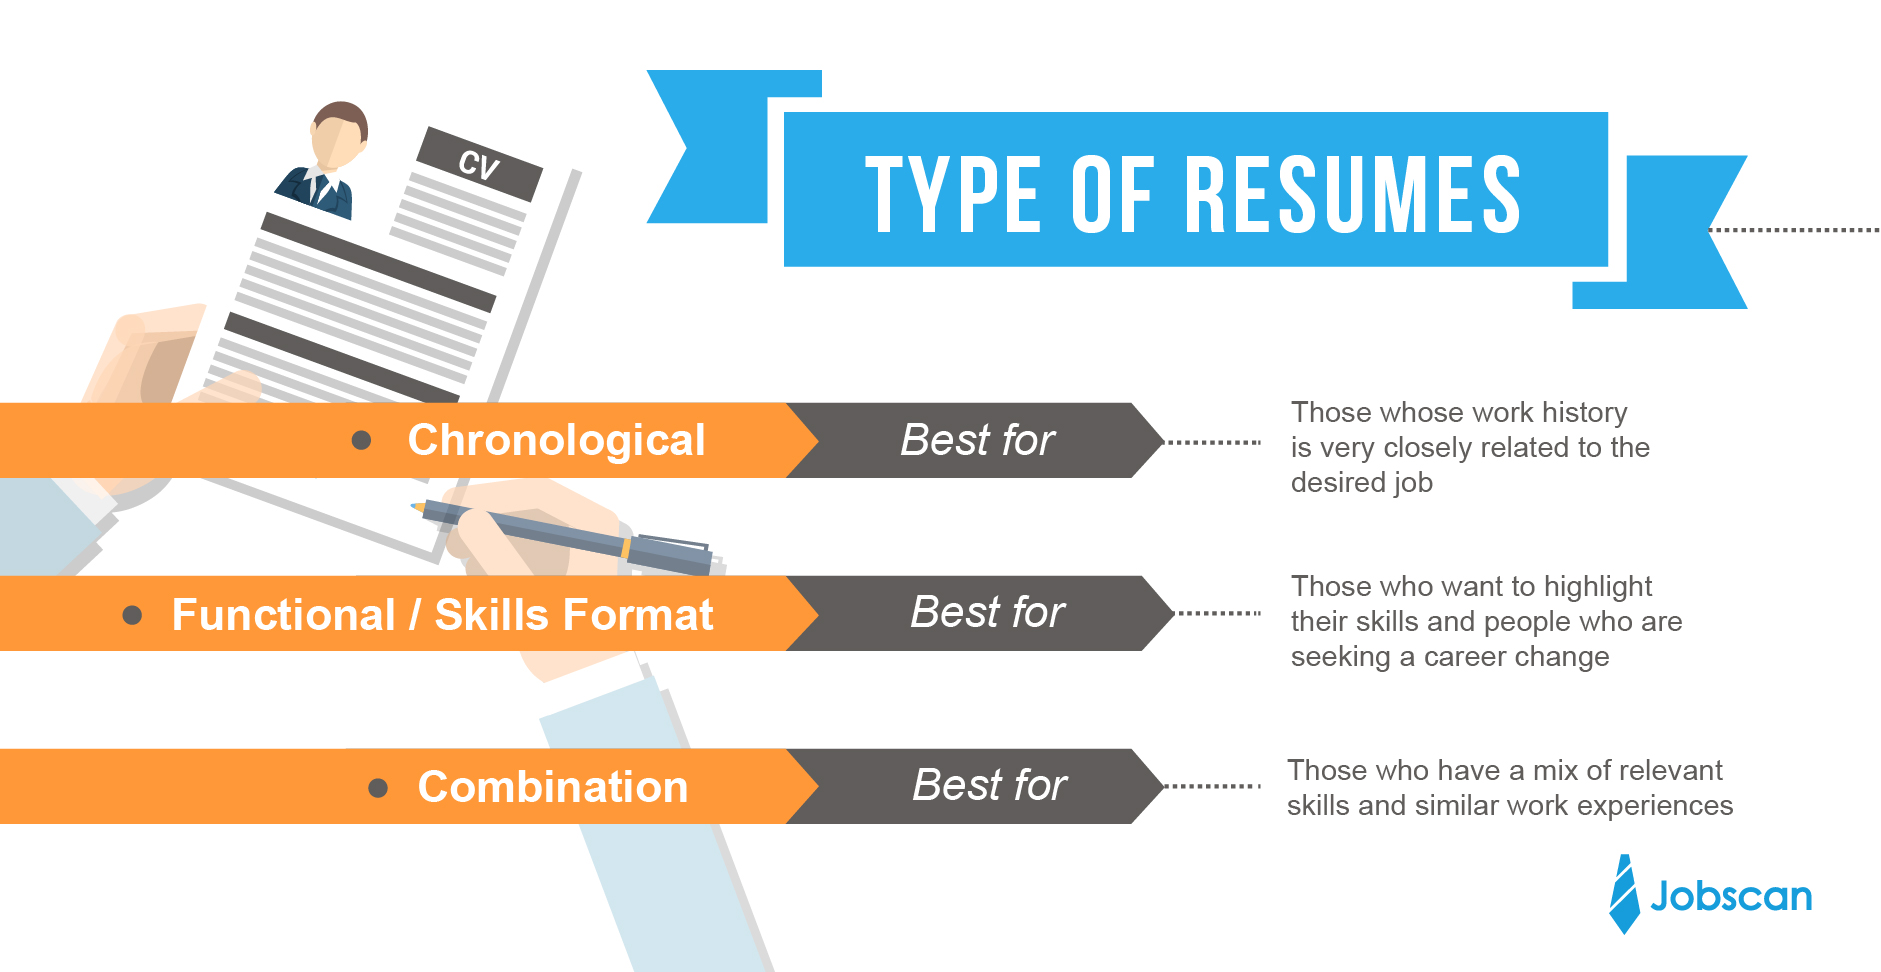 Types Of Resume Resume Writing Guide Jobscan